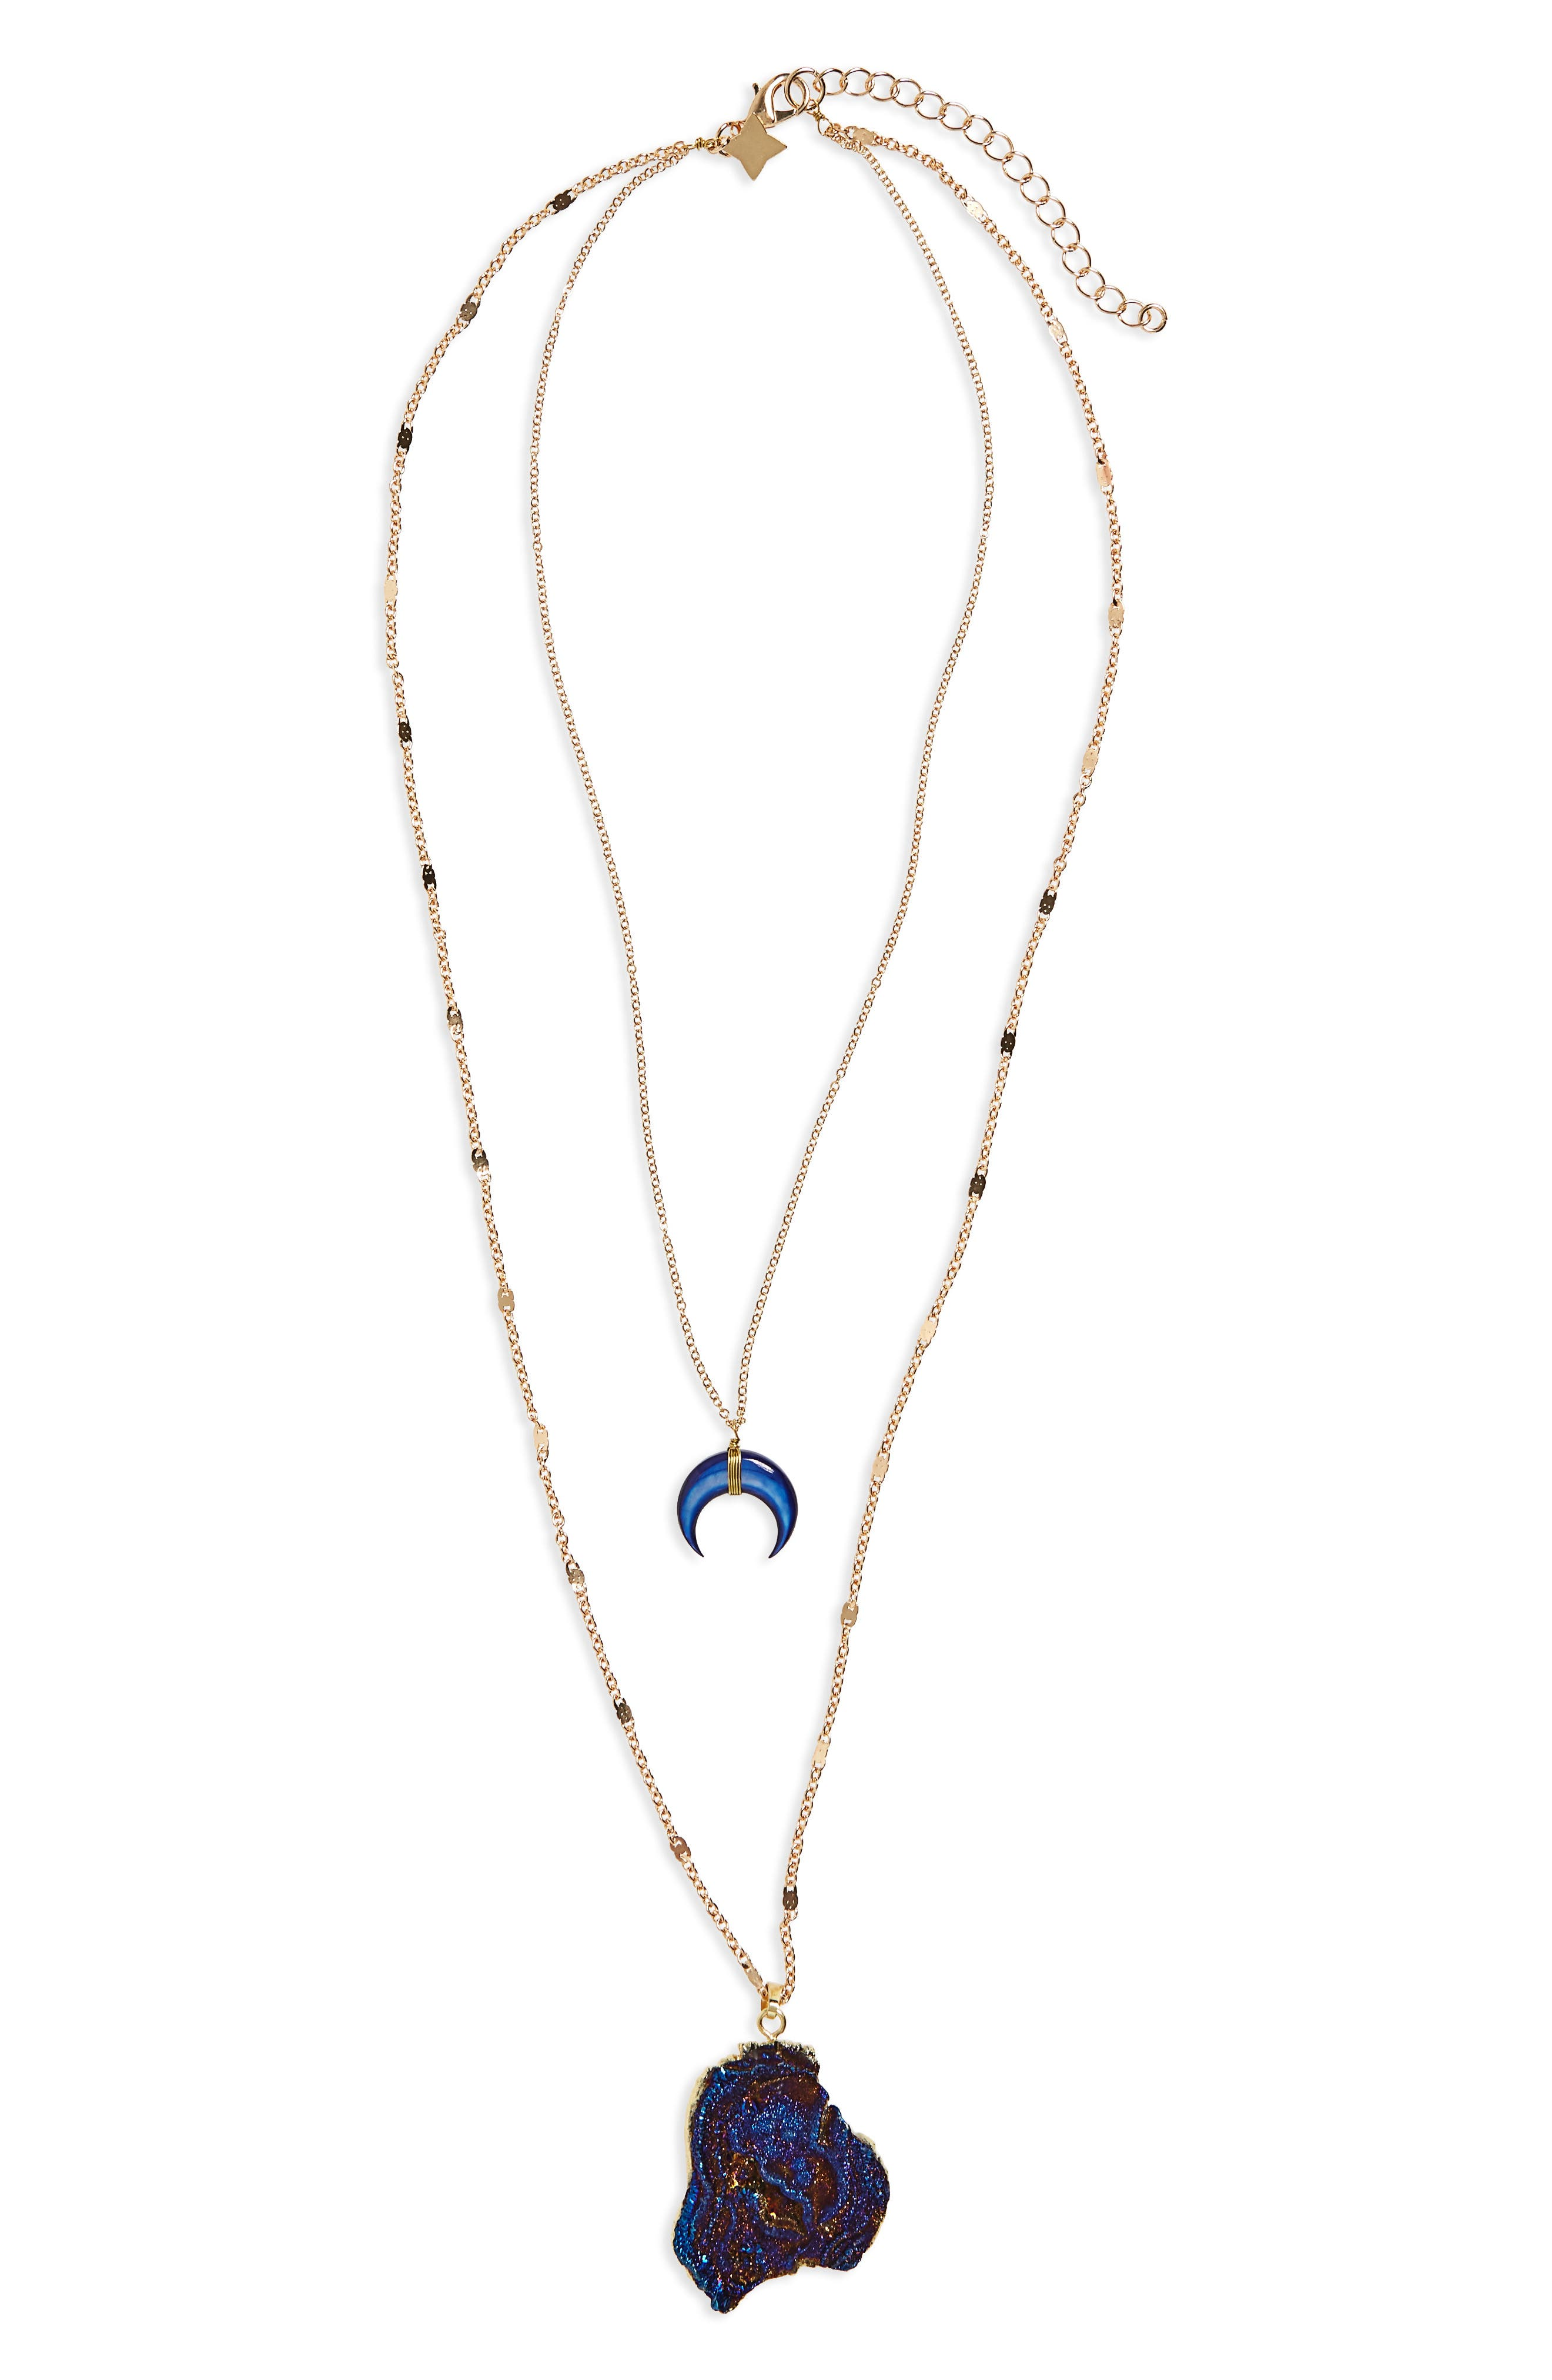 Drusy Layered Necklace,                             Main thumbnail 1, color,                             410